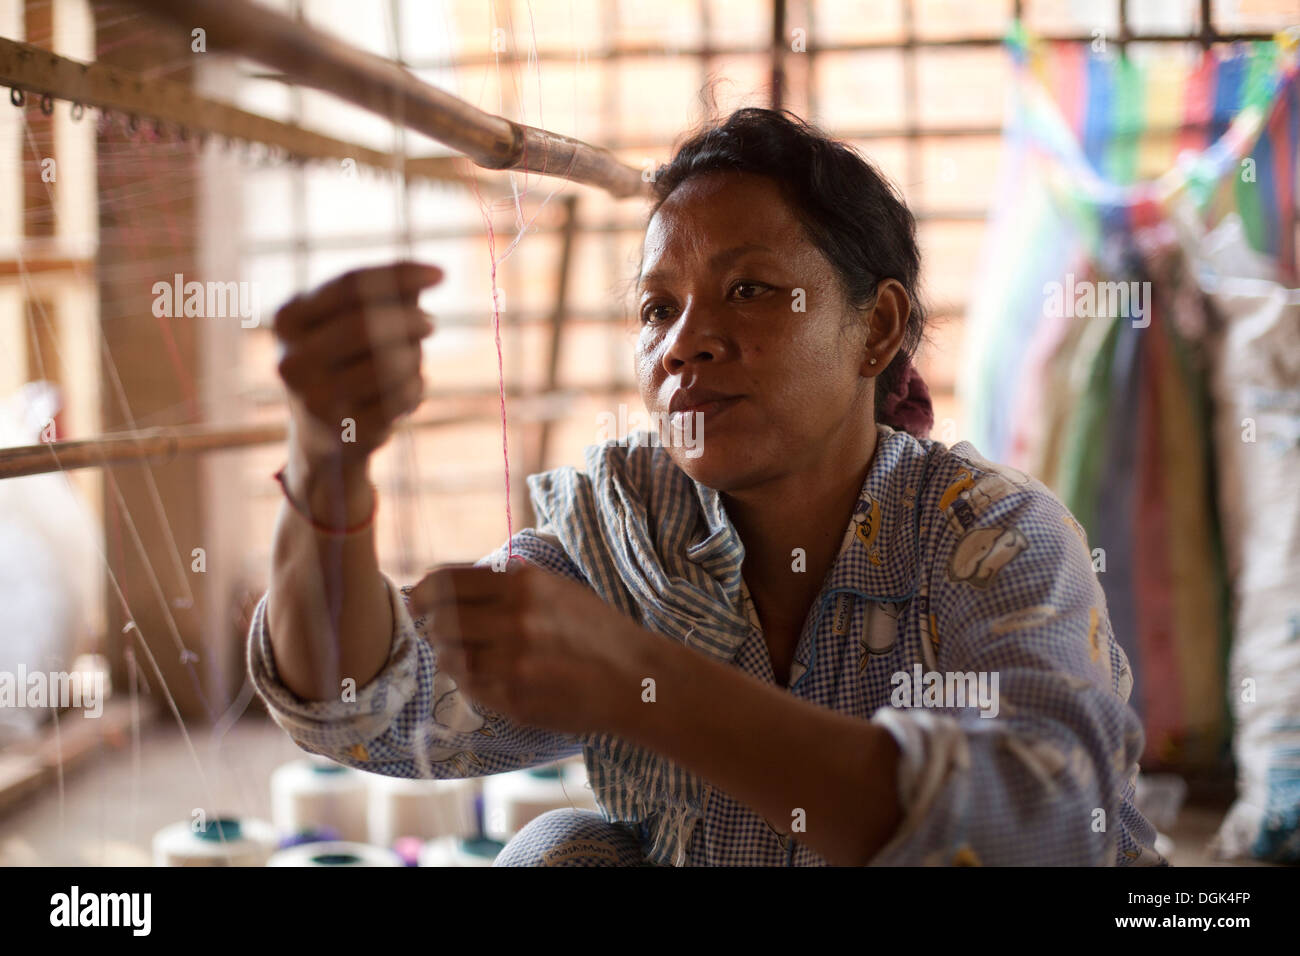 A women works in a small village textile factory outside of Phnom Penh, Cambodia. Photos © Dennis Drenner 2013. - Stock Image